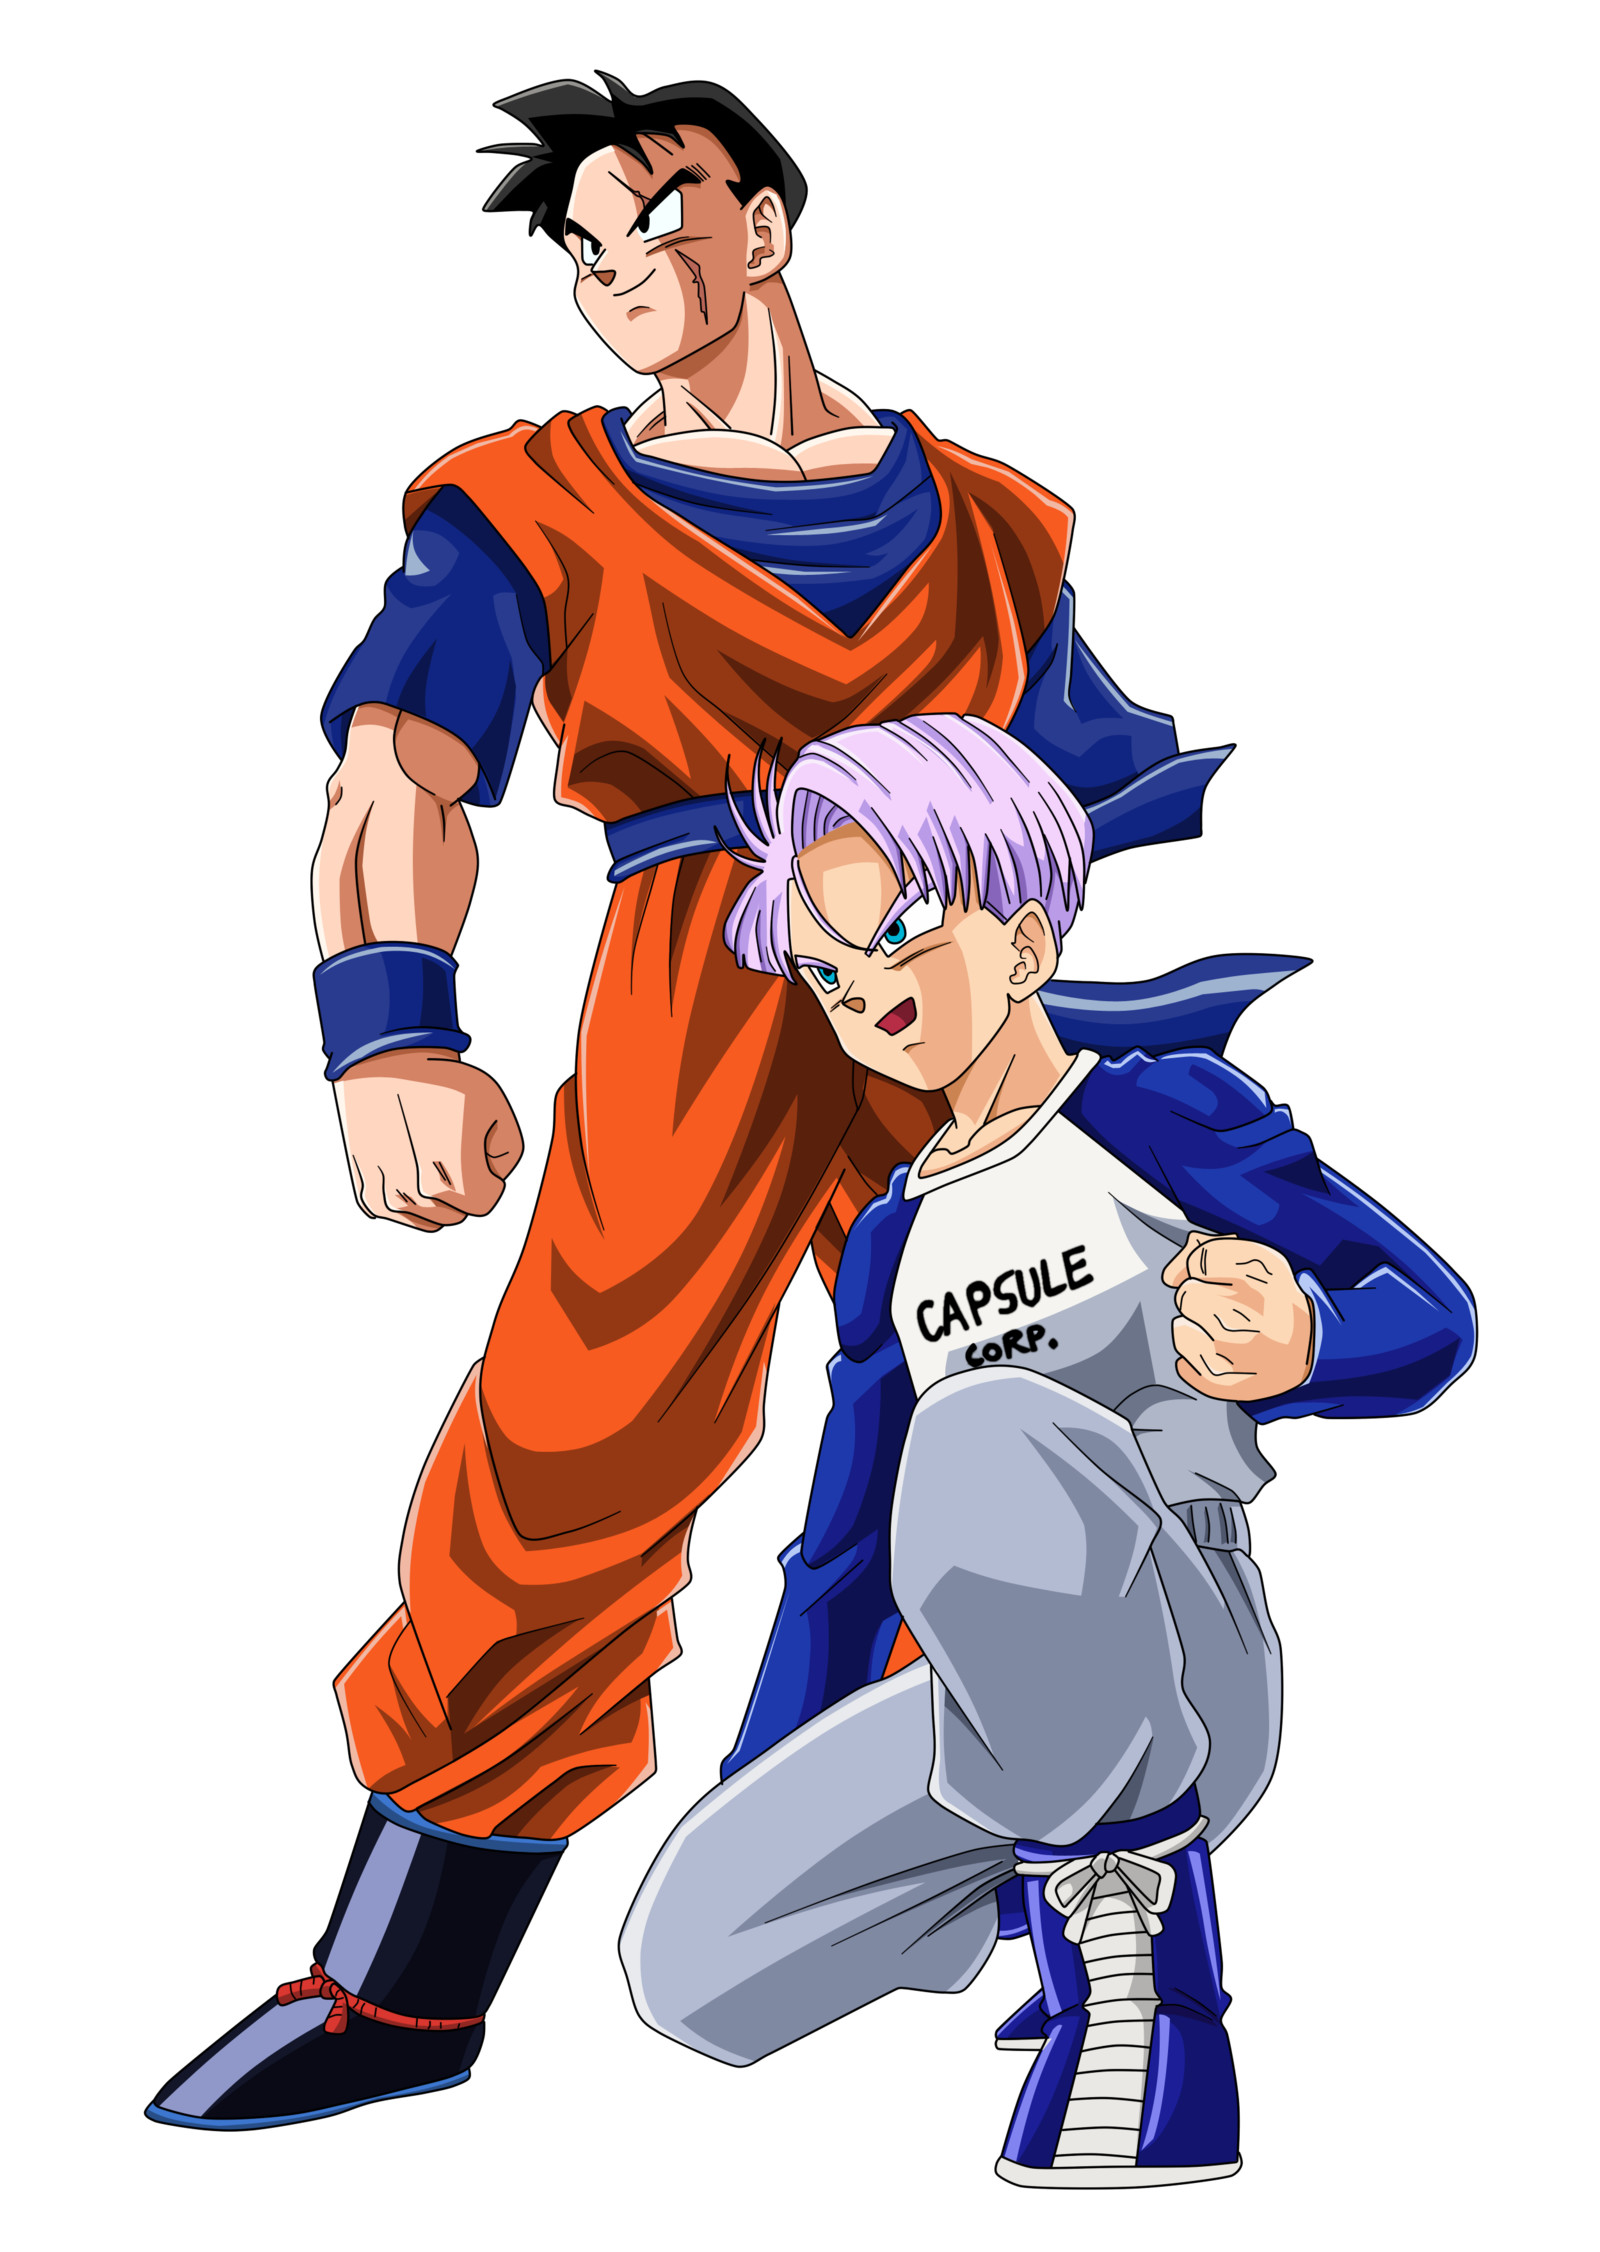 Future Gohan and Trunks Color by BoScha196 on DeviantArt – Visit now for 3D  Dragon Ball